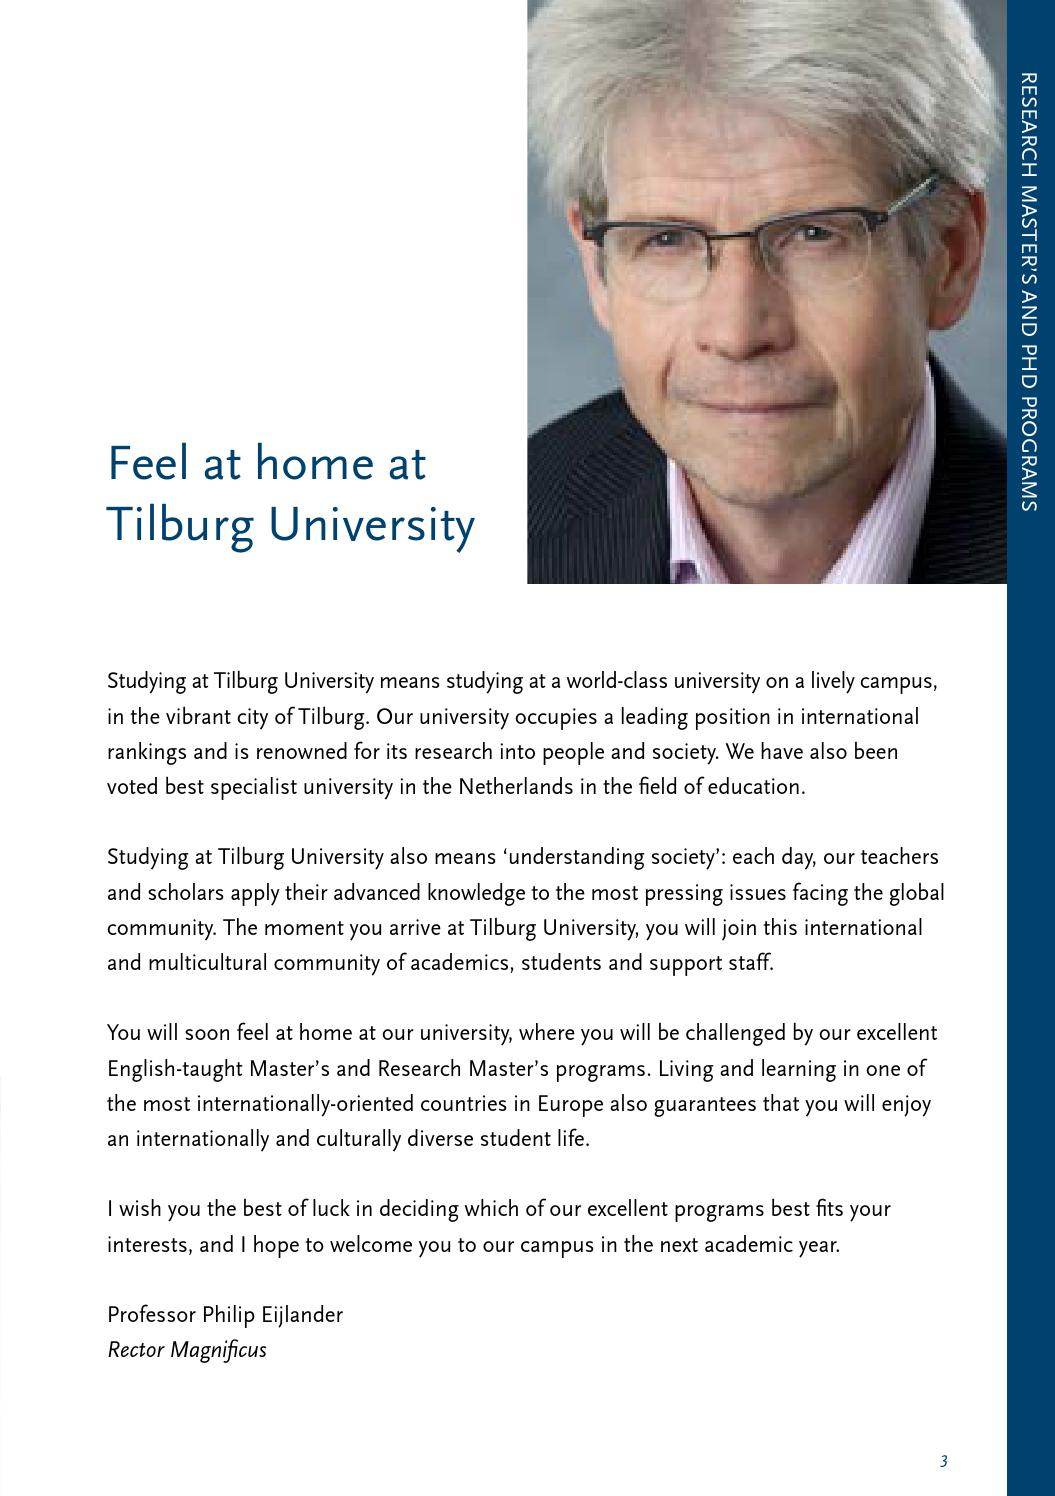 Research Master's and PhD programs 2015-2016 by Tilburg